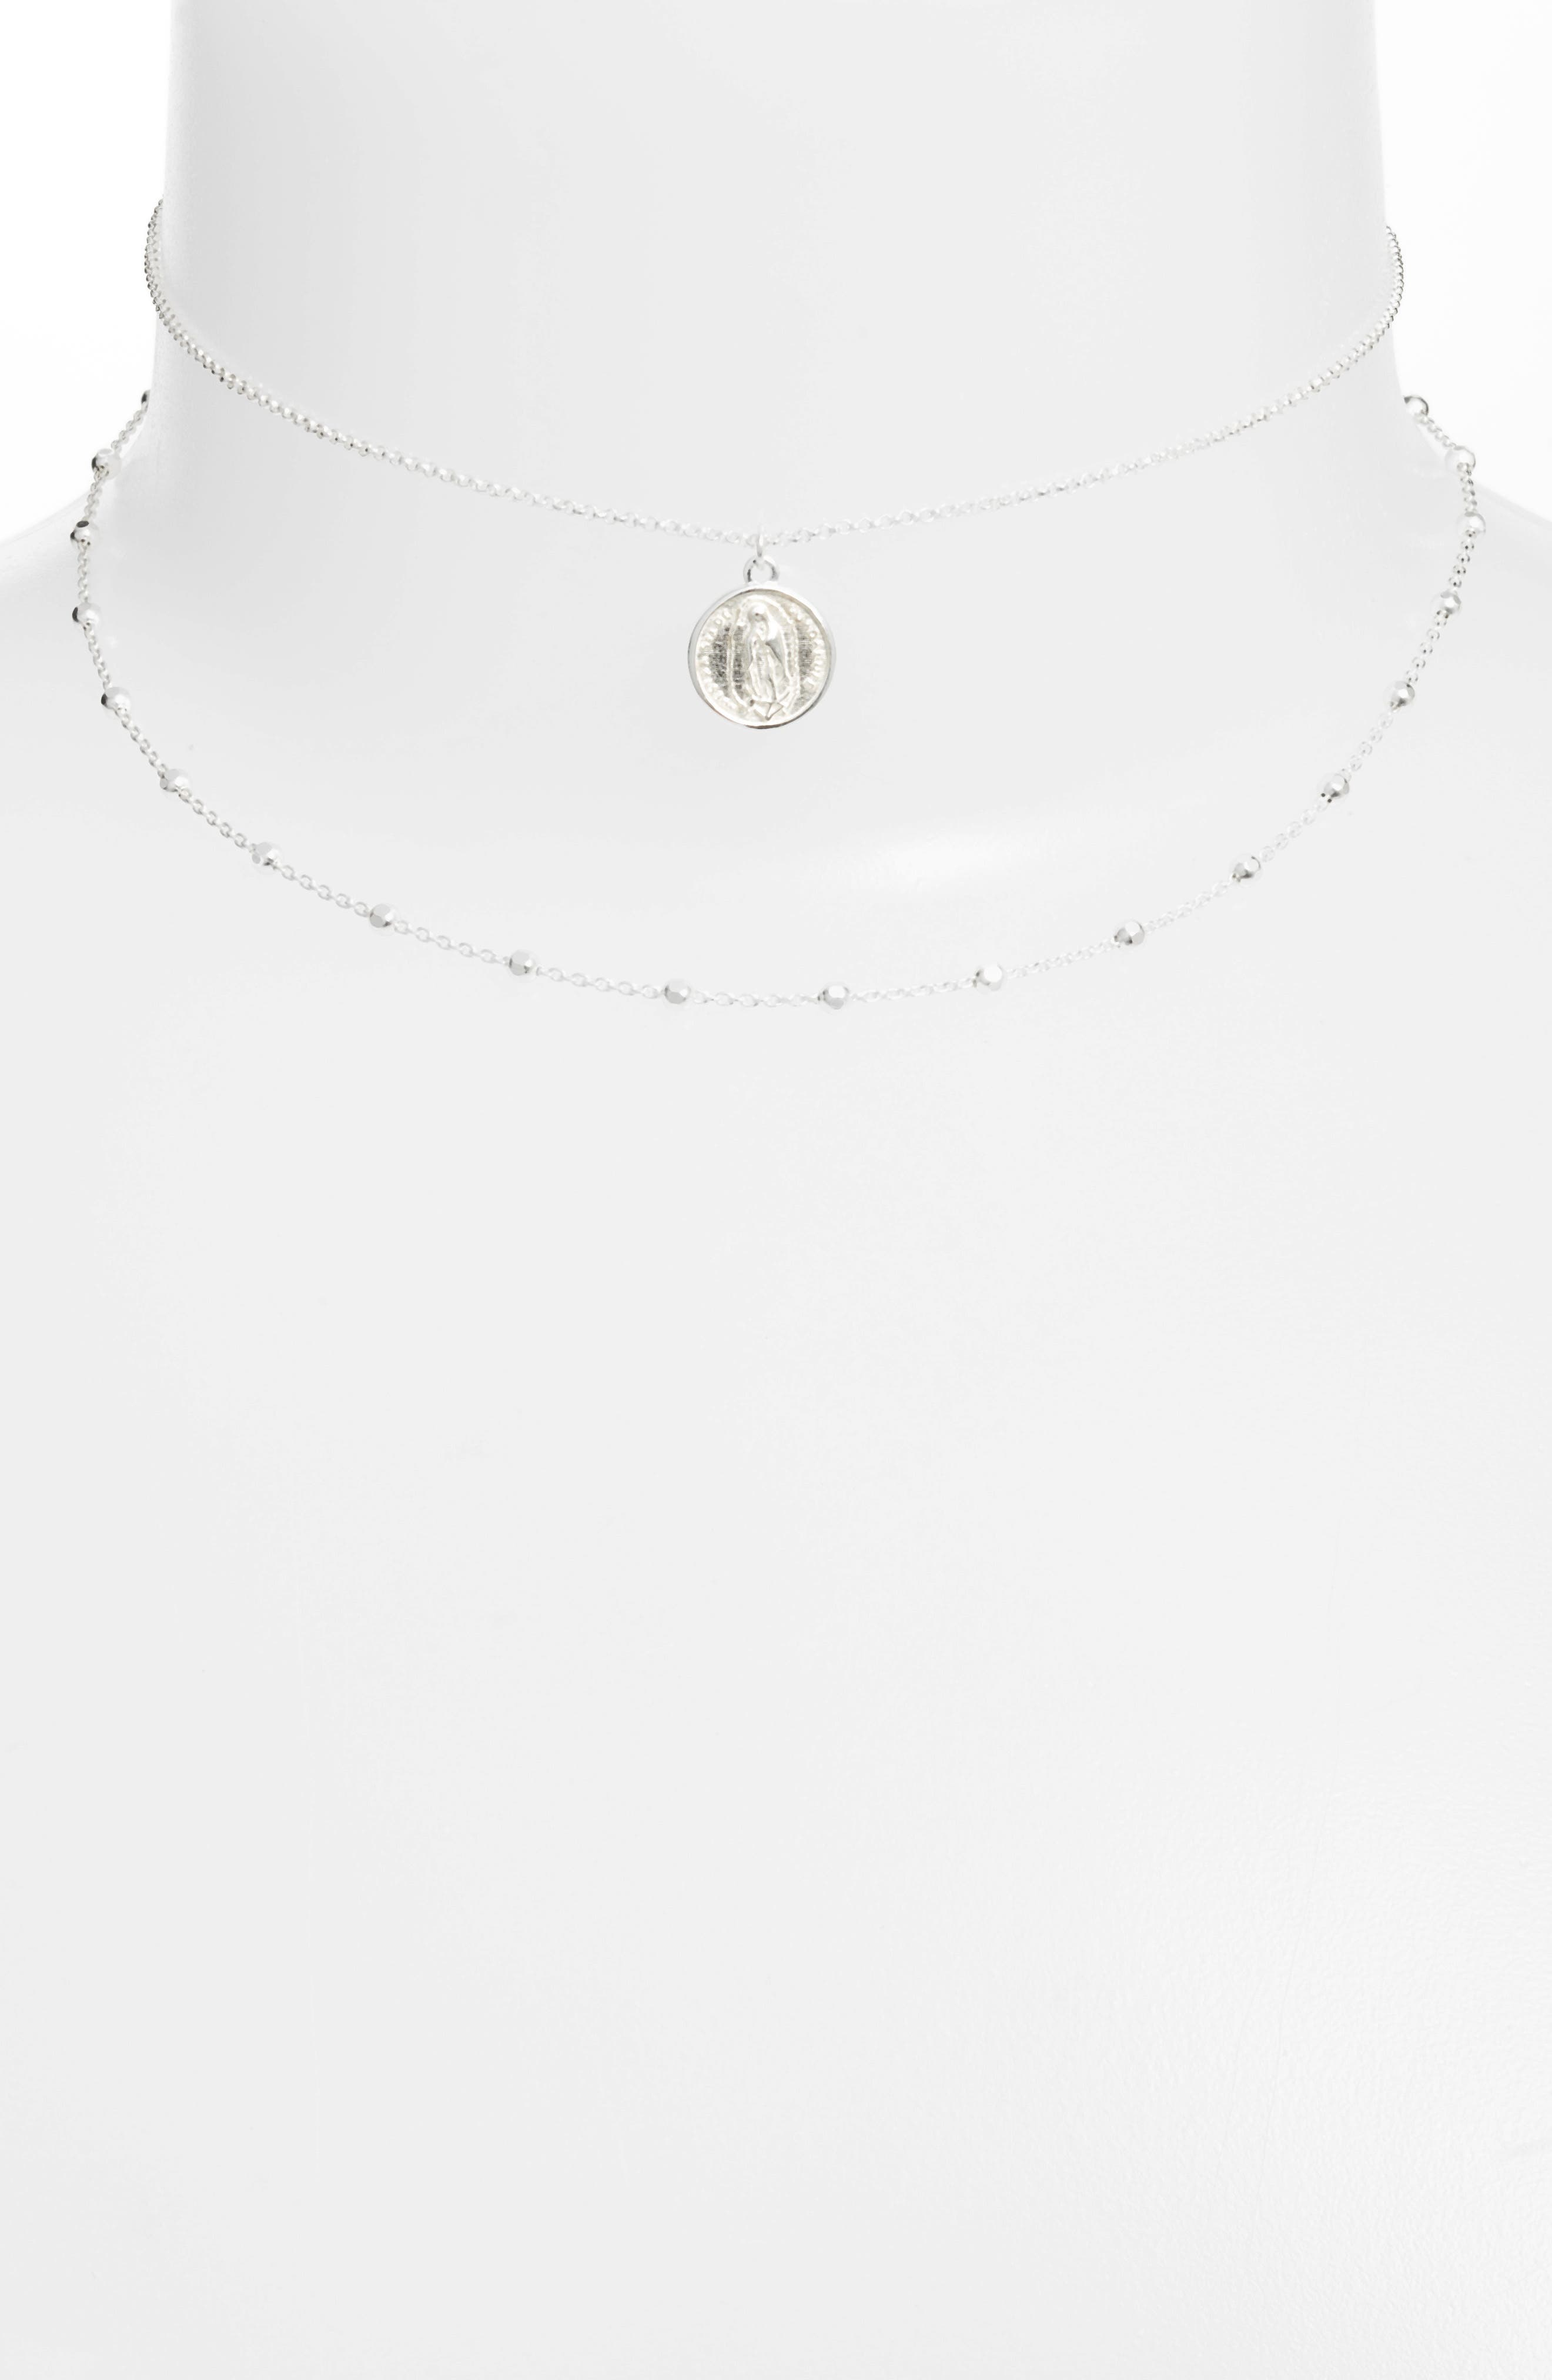 Guadalupe Multistrand Necklace,                             Alternate thumbnail 2, color,                             SILVER